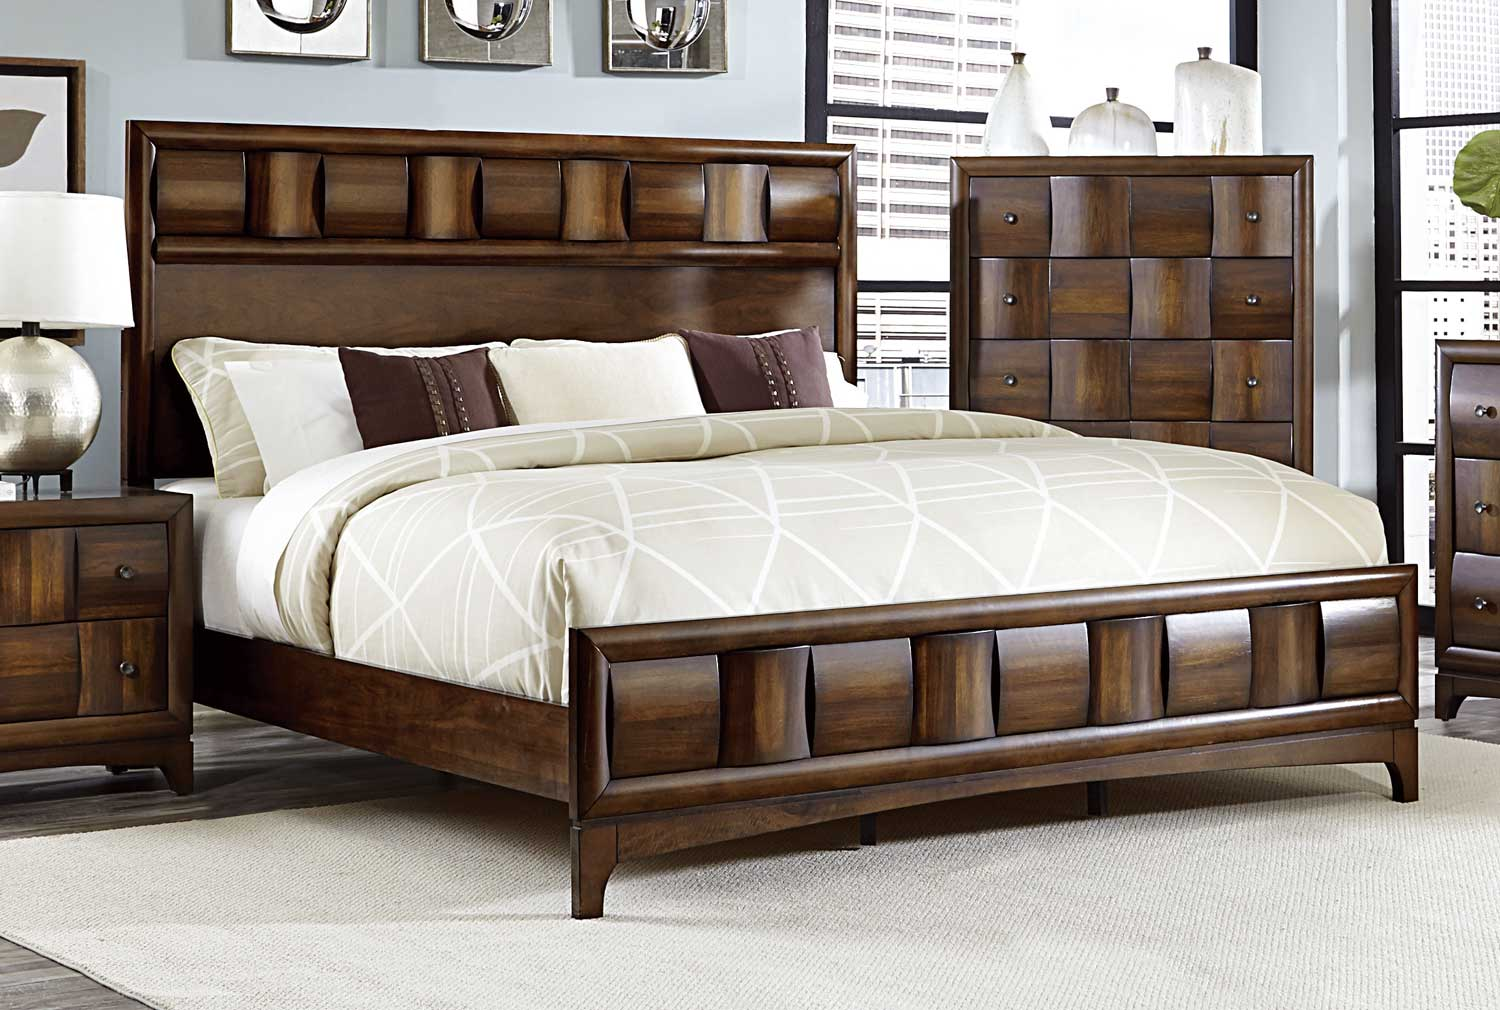 Homelegance porter bed warm walnut 1852 1 for Furniture xchange new jersey